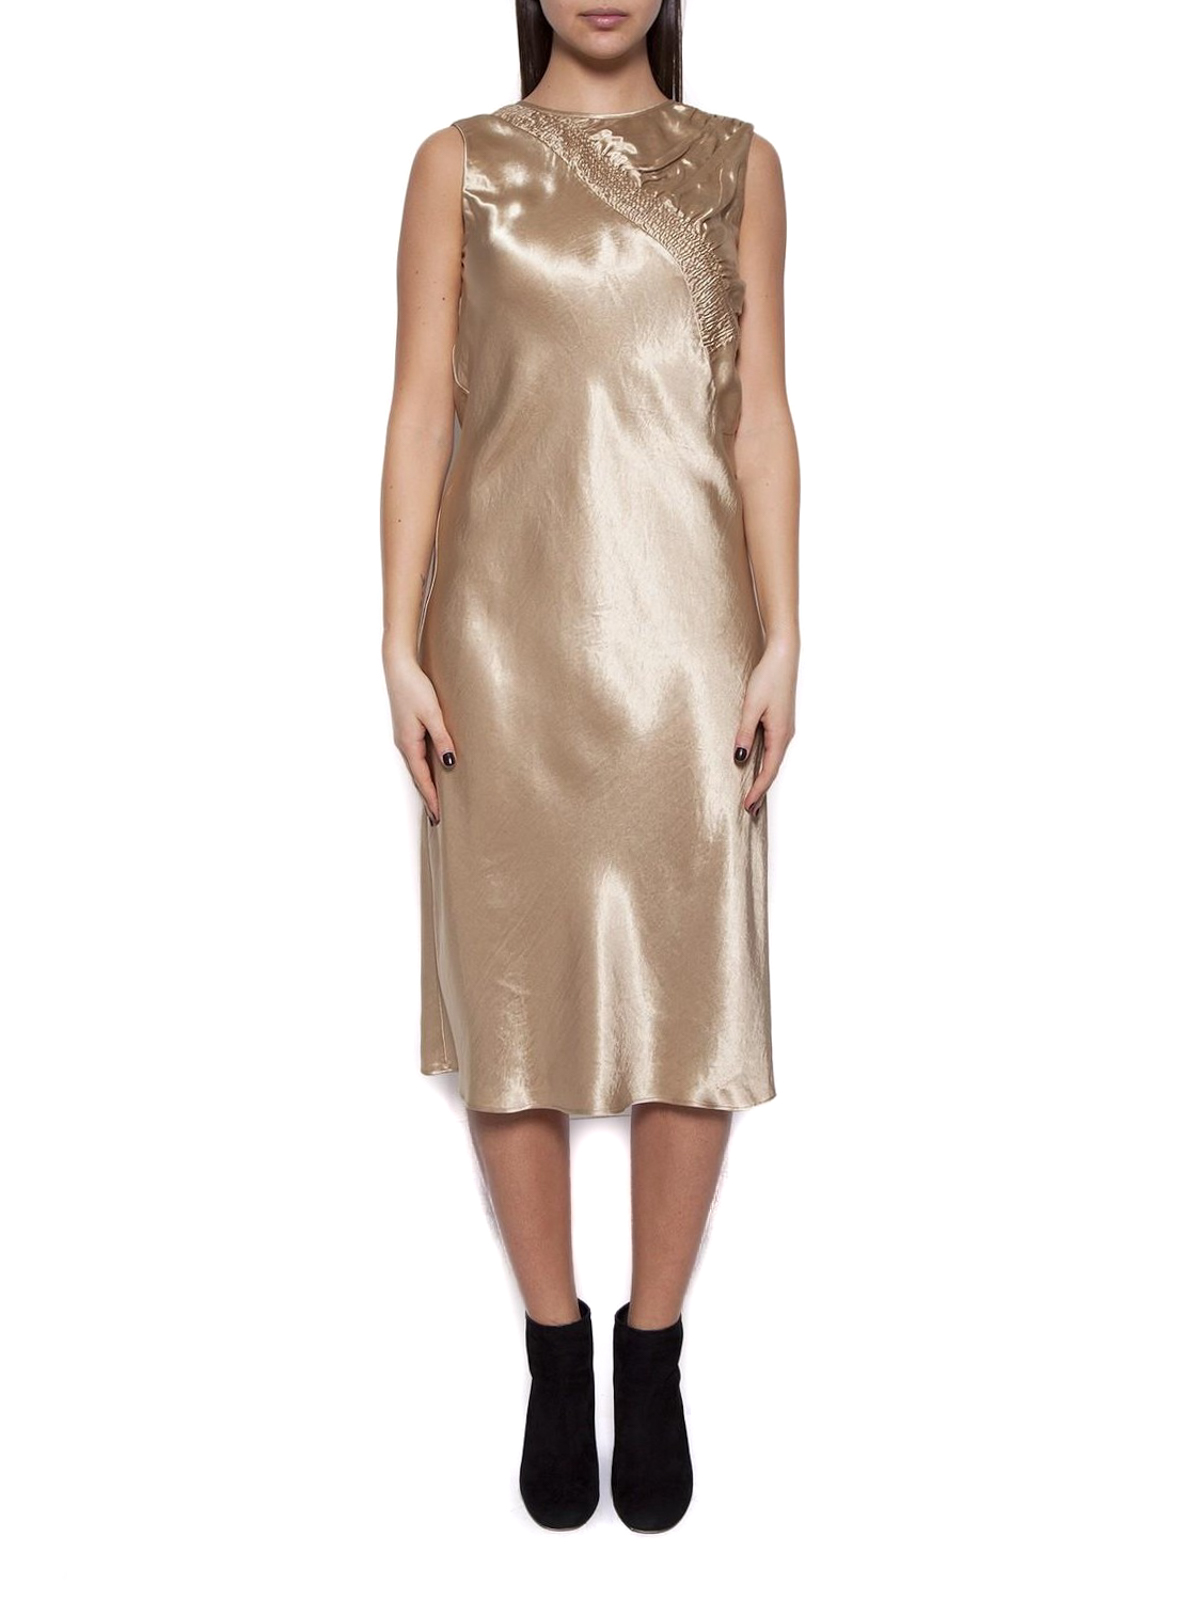 2019 year look- Shift Gold dress pictures